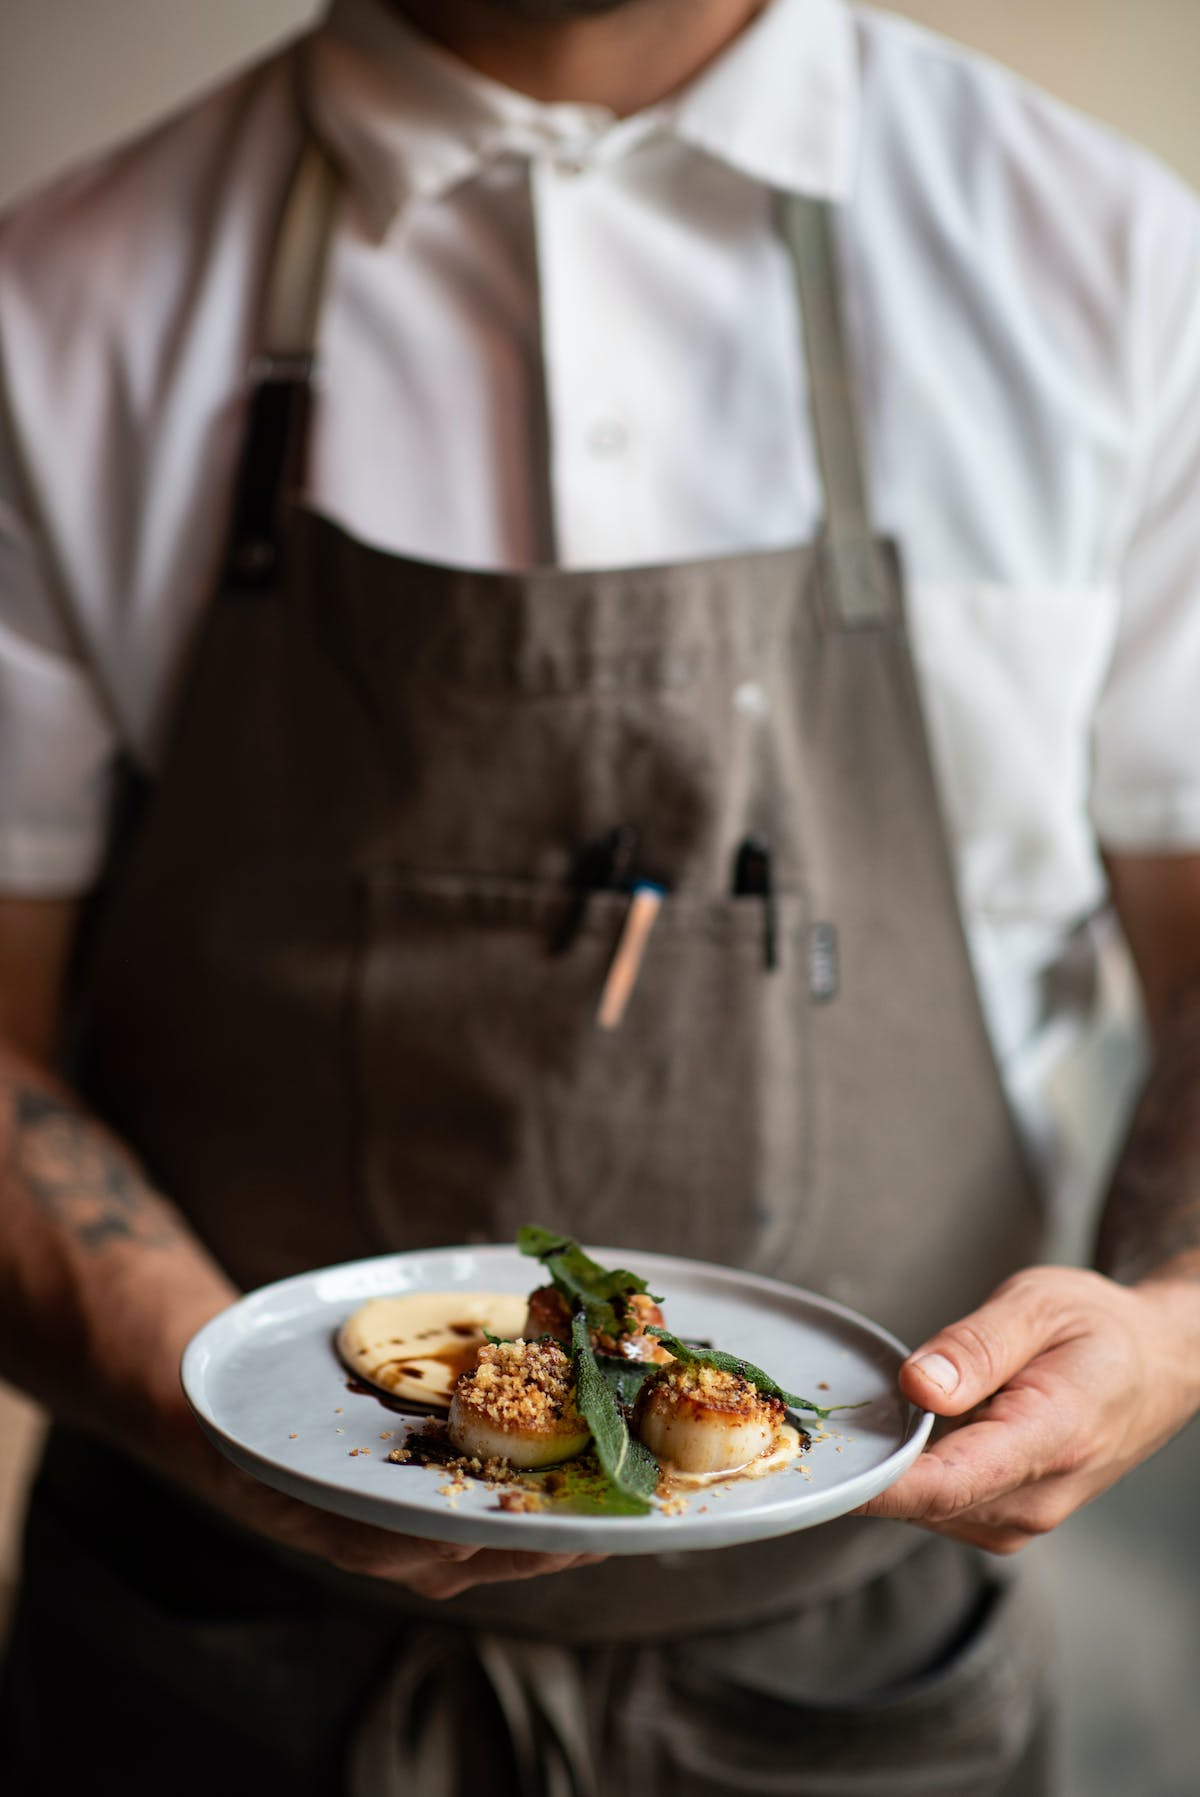 a chef holding a plate of food